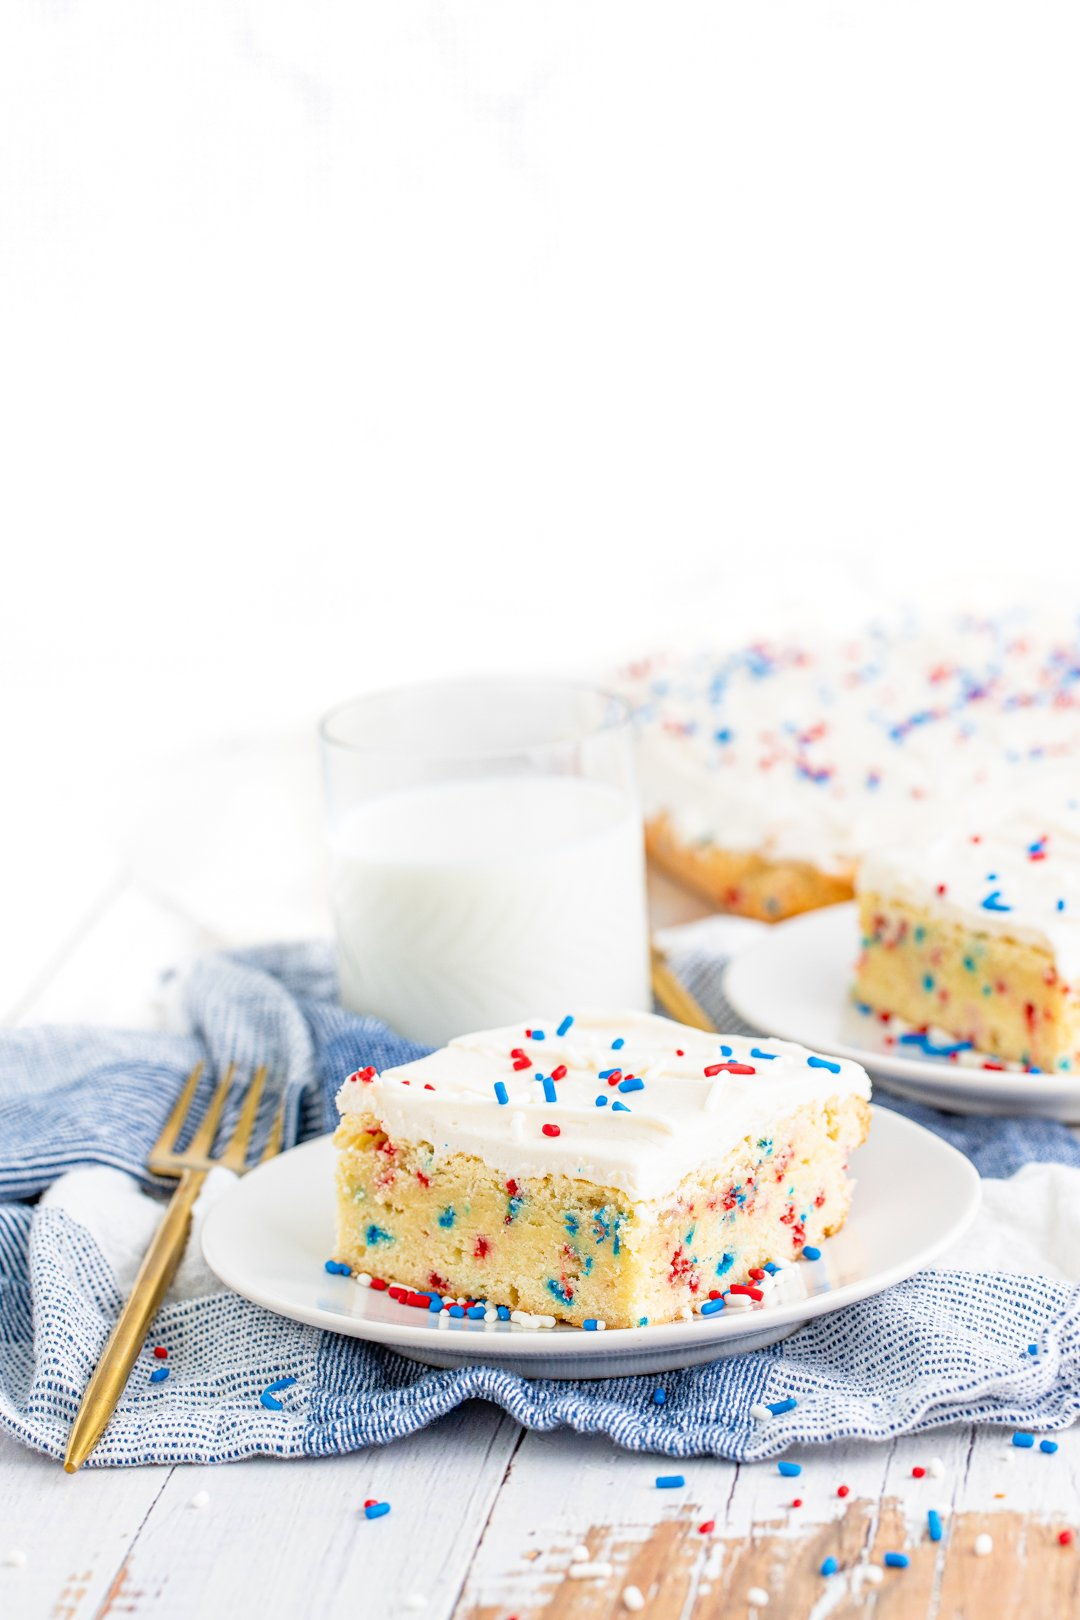 sugar cookie bar decorated for patriotic holidays on a plate